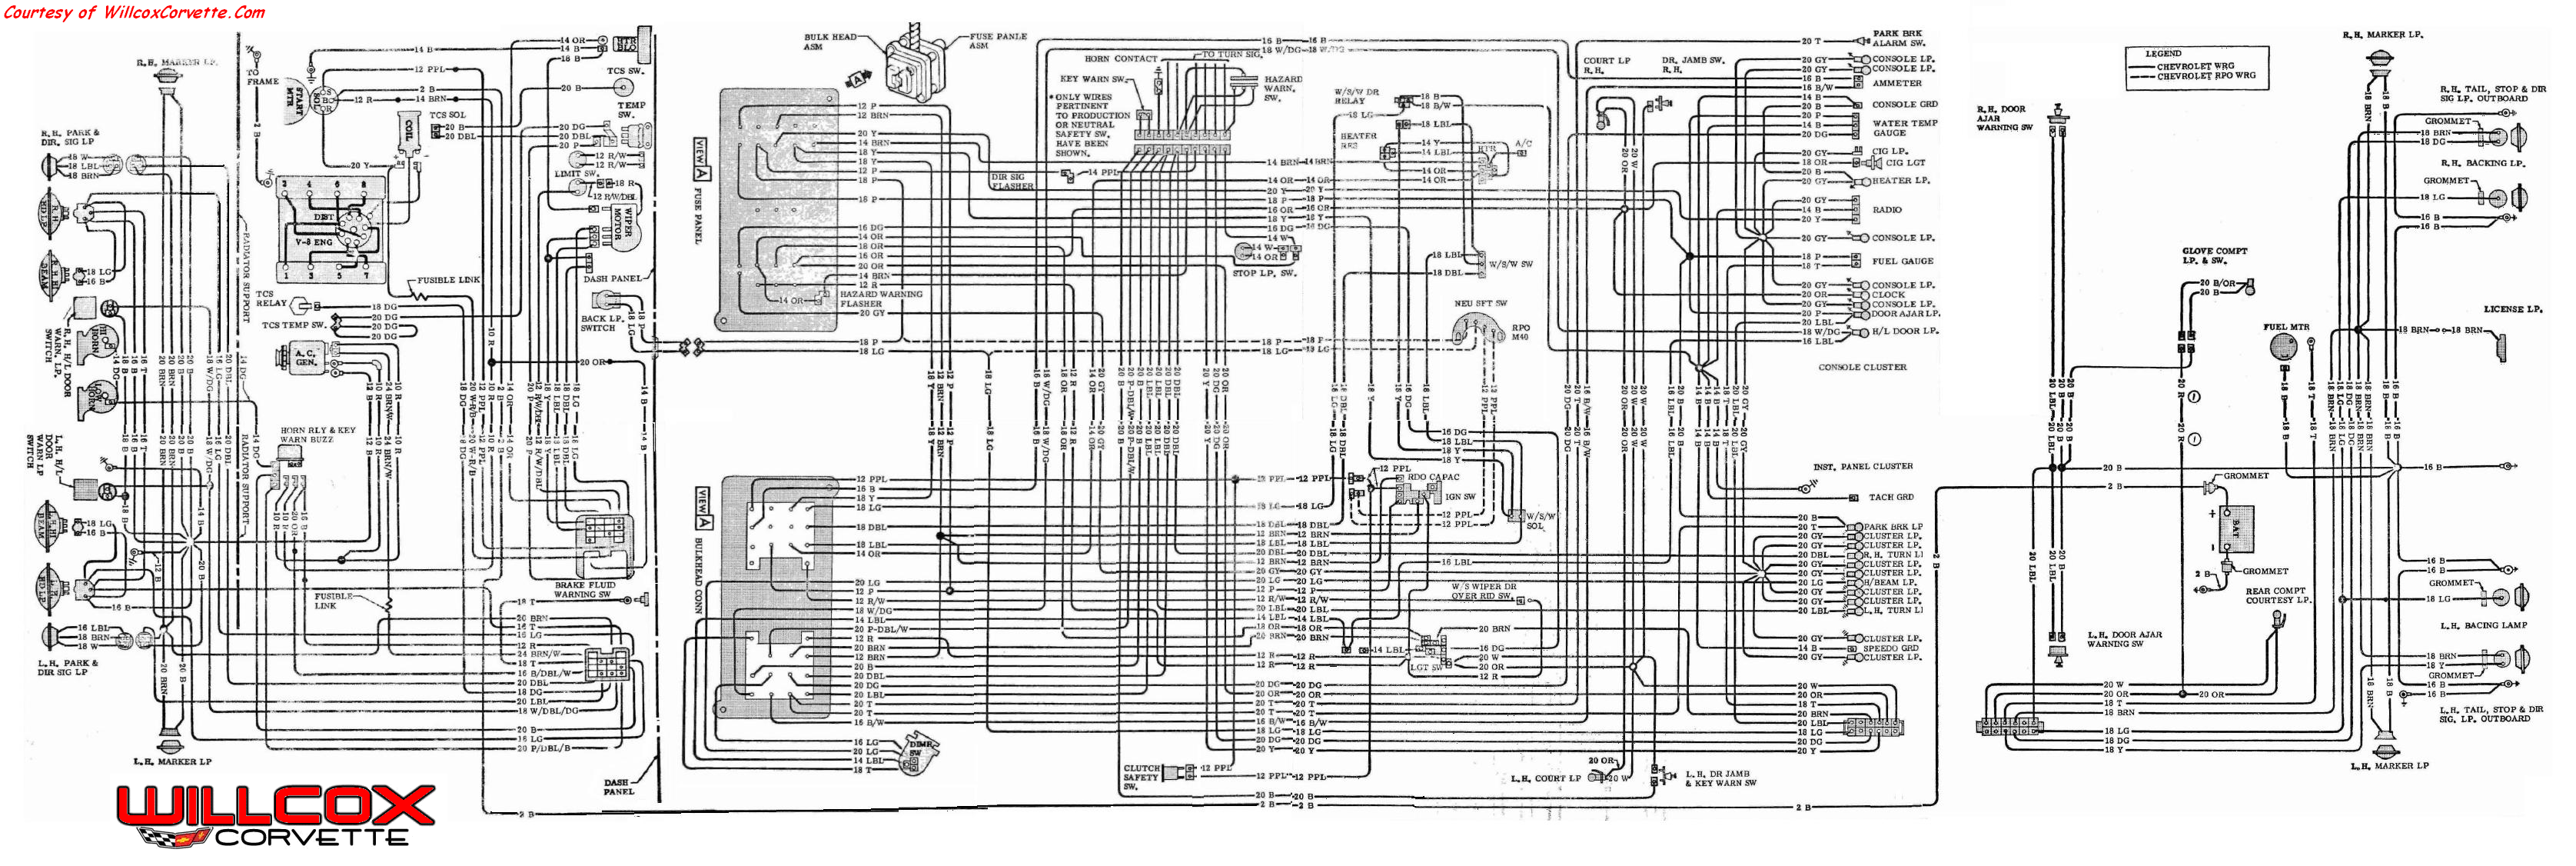 1970 corvette wire schematic tracer willcox corvette inc C3 Corvette Headlight Wiring Diagram